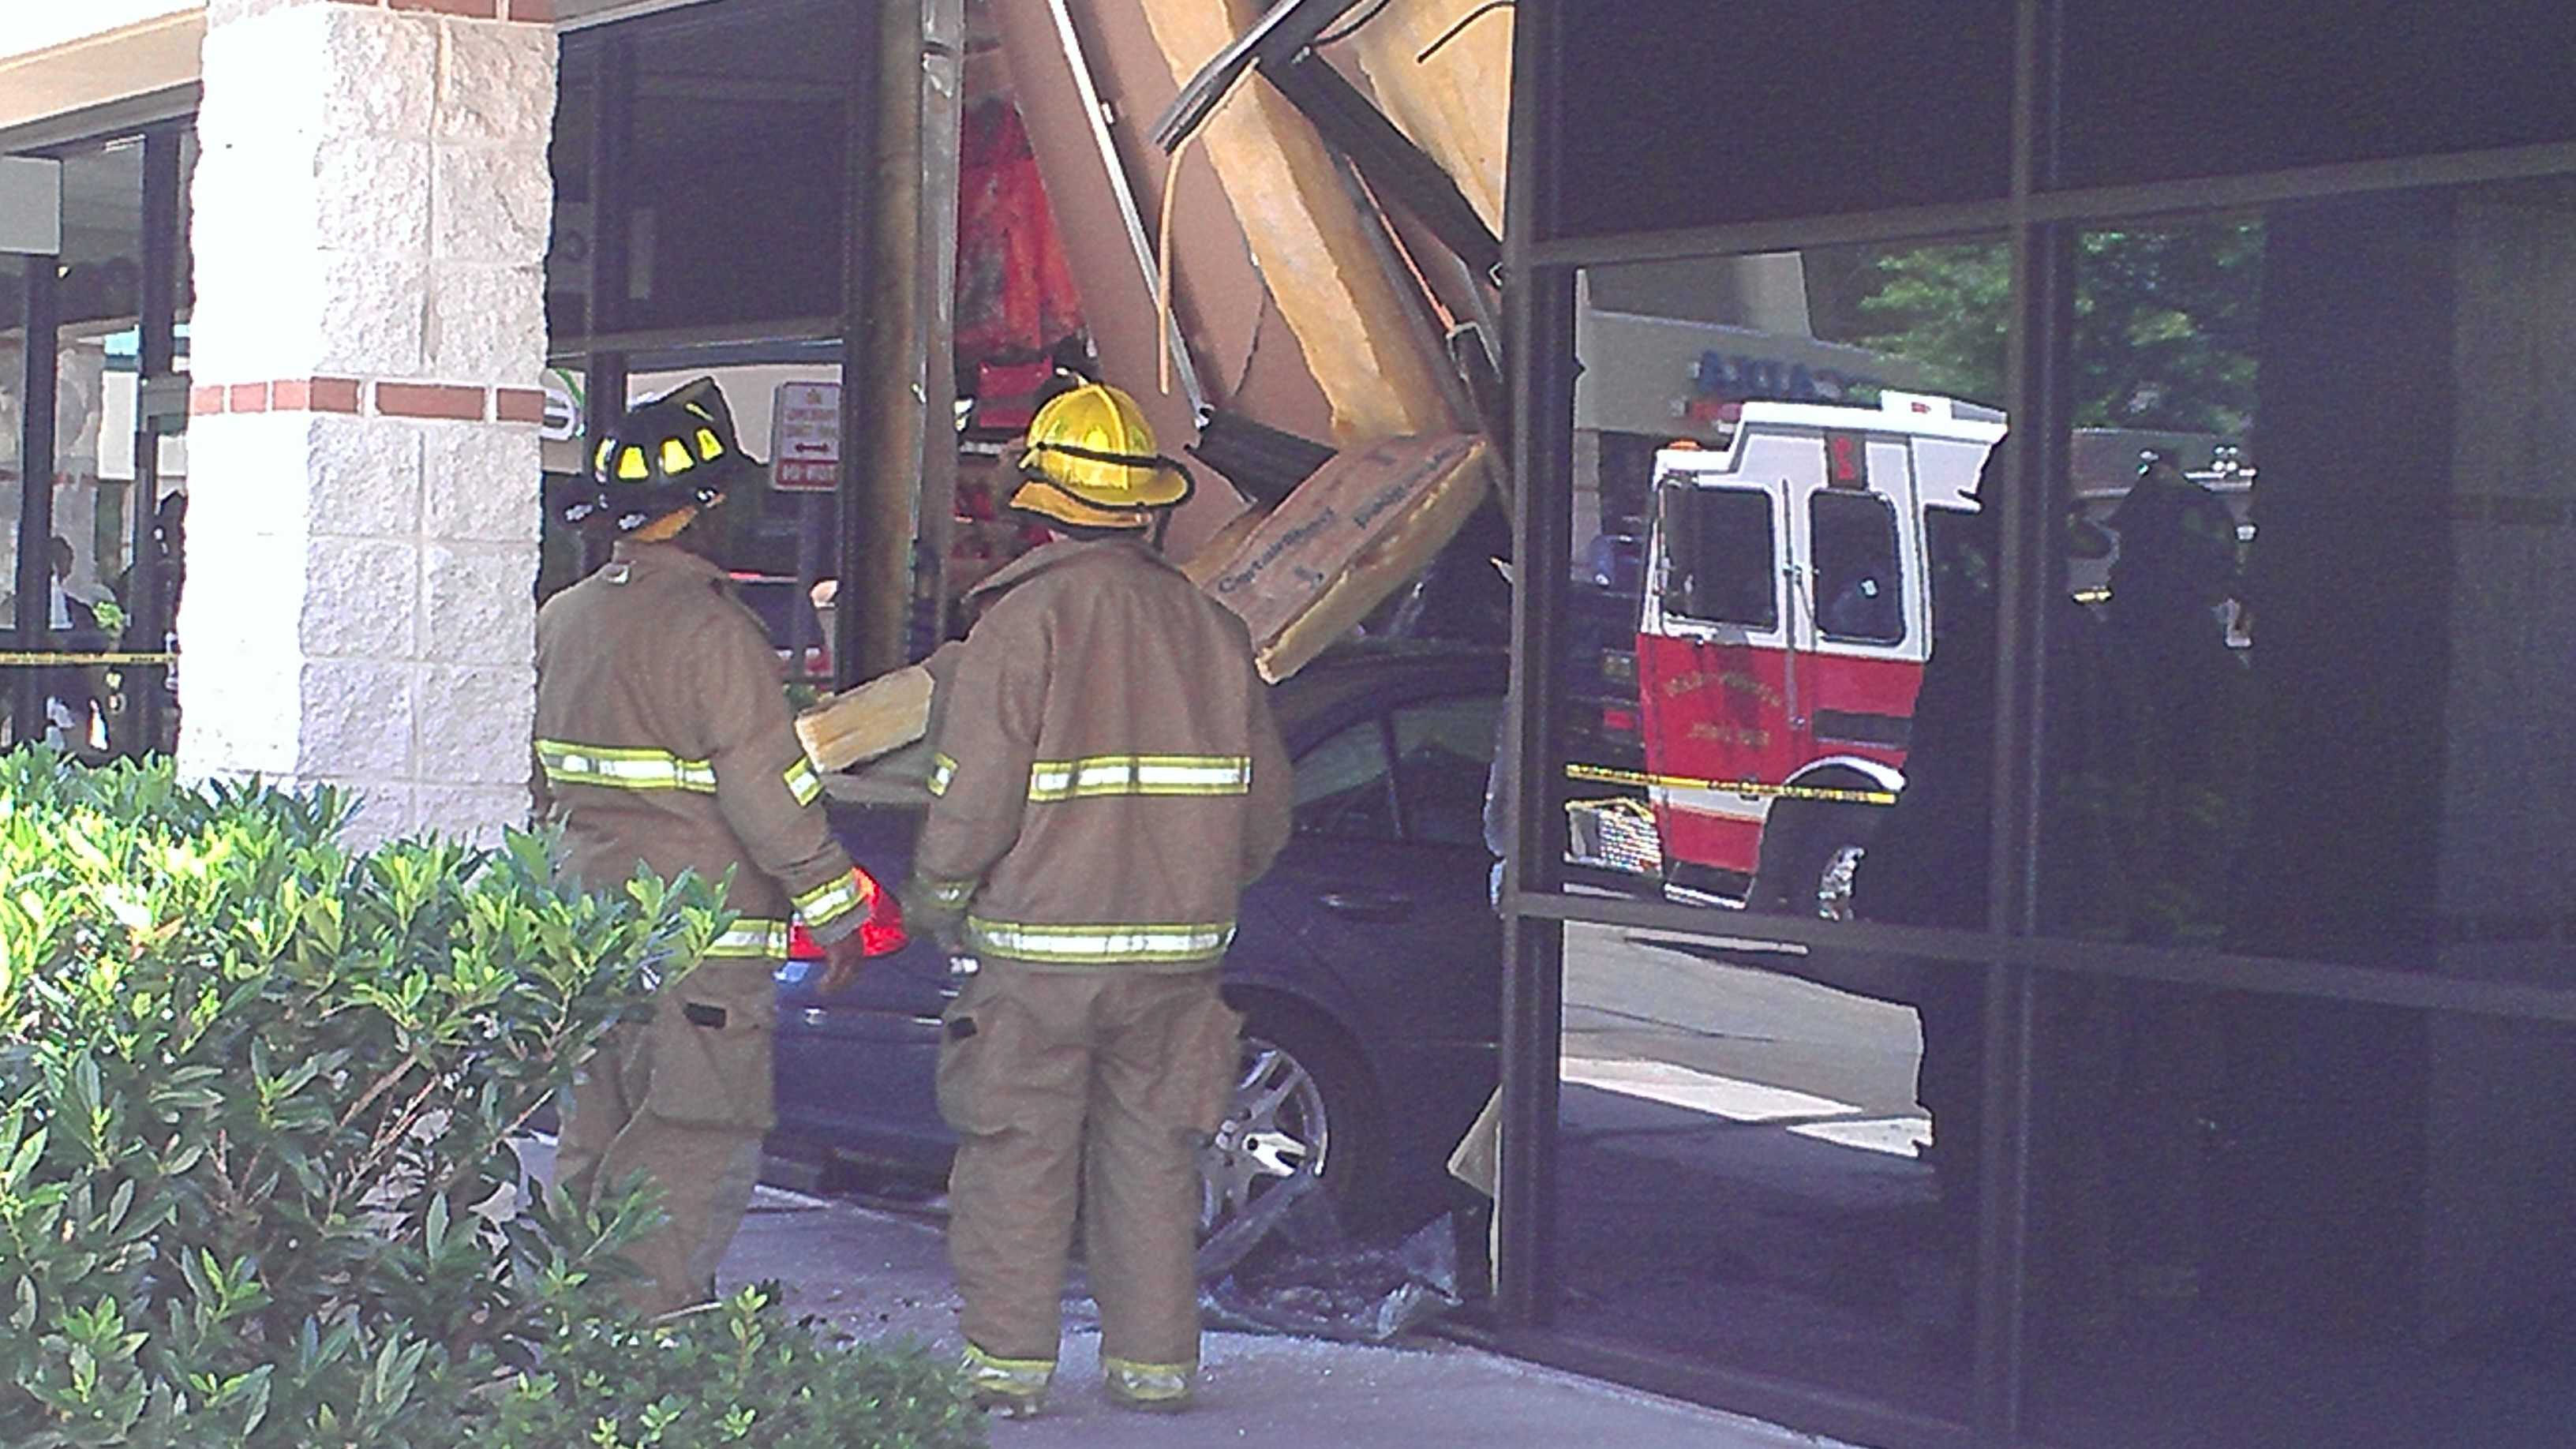 A car hit several cars in a parking lot before crashing through a storefront window in Winston-Salem Friday afternoon. (Photo by WXII's Doug Miller)